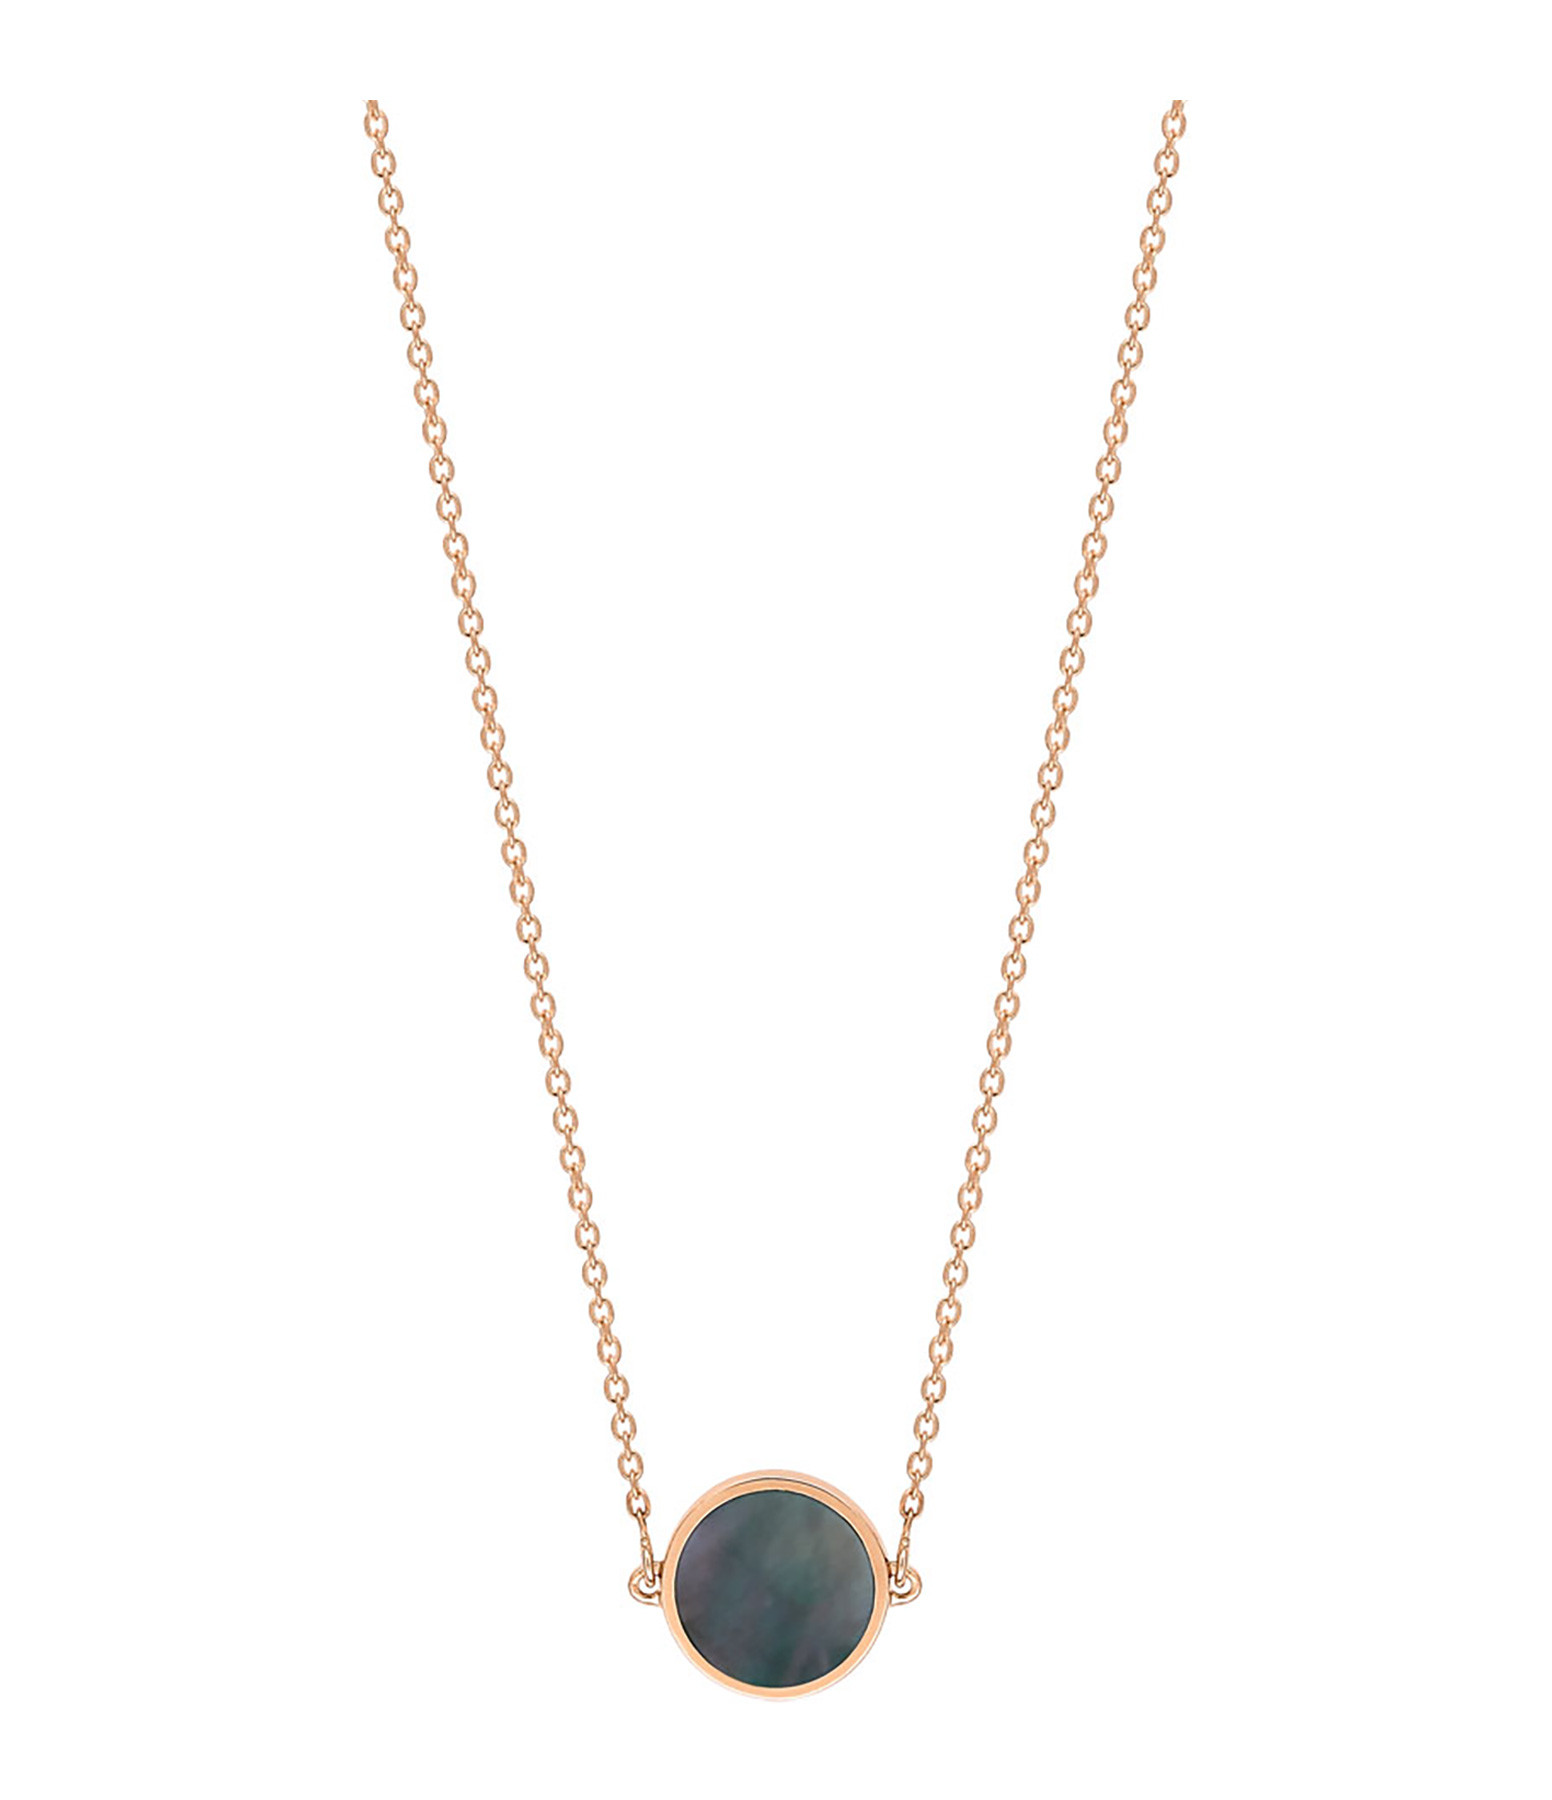 GINETTE NY - Collier Ever Mini Black Mop Disc Or Rose